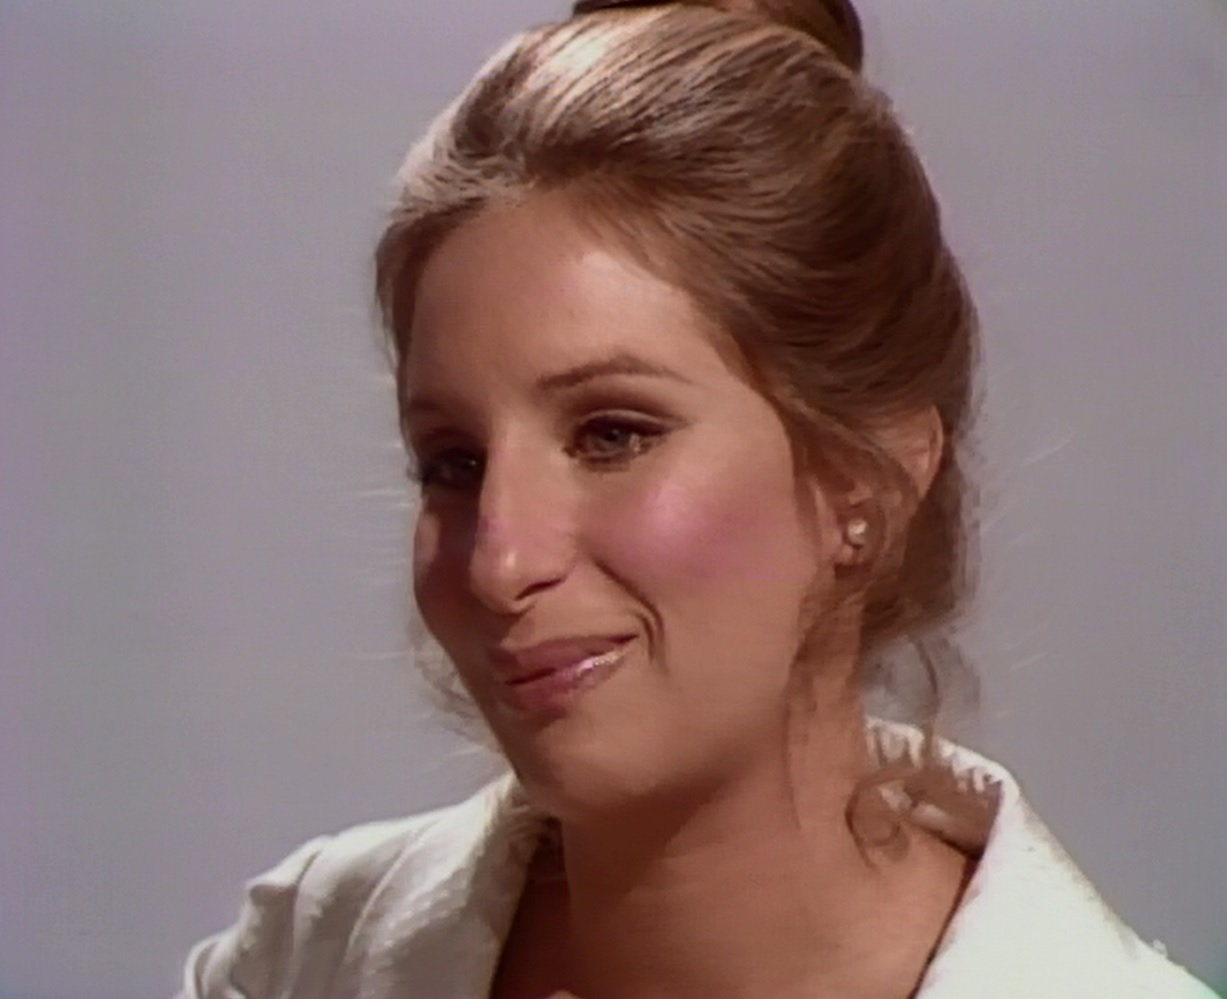 Barbra Streisand and Other Musical Instruments (1973)